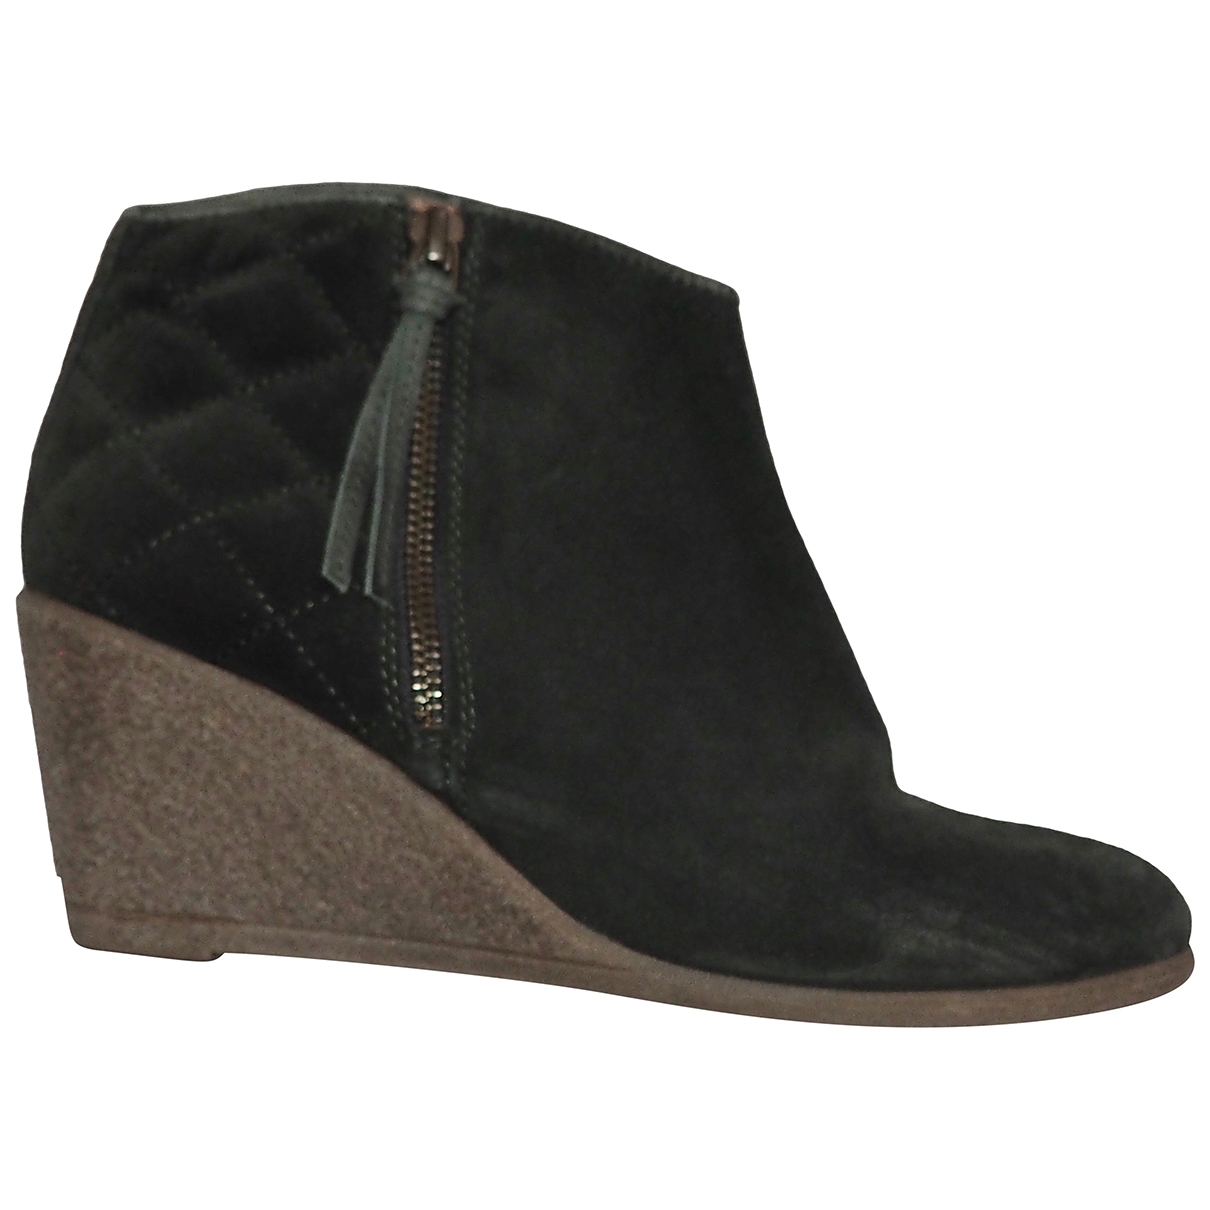 Sessun \N Green Suede Ankle boots for Women 37 EU